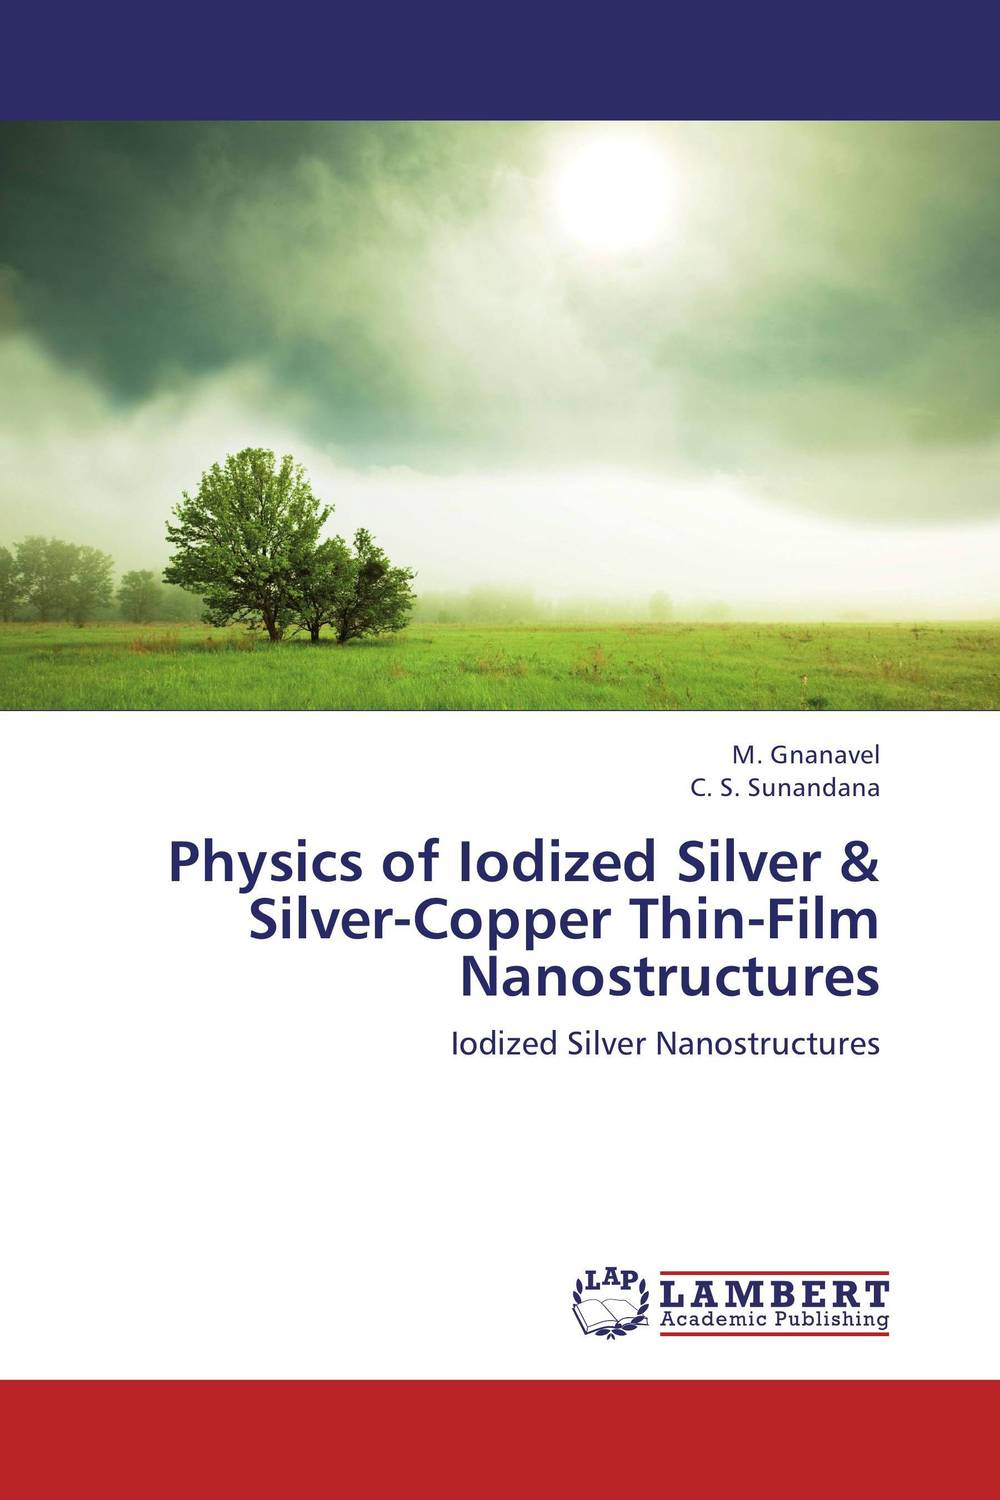 Physics of Iodized Silver & Silver-Copper Thin-Film Nanostructures study of point defects in solids and thin films